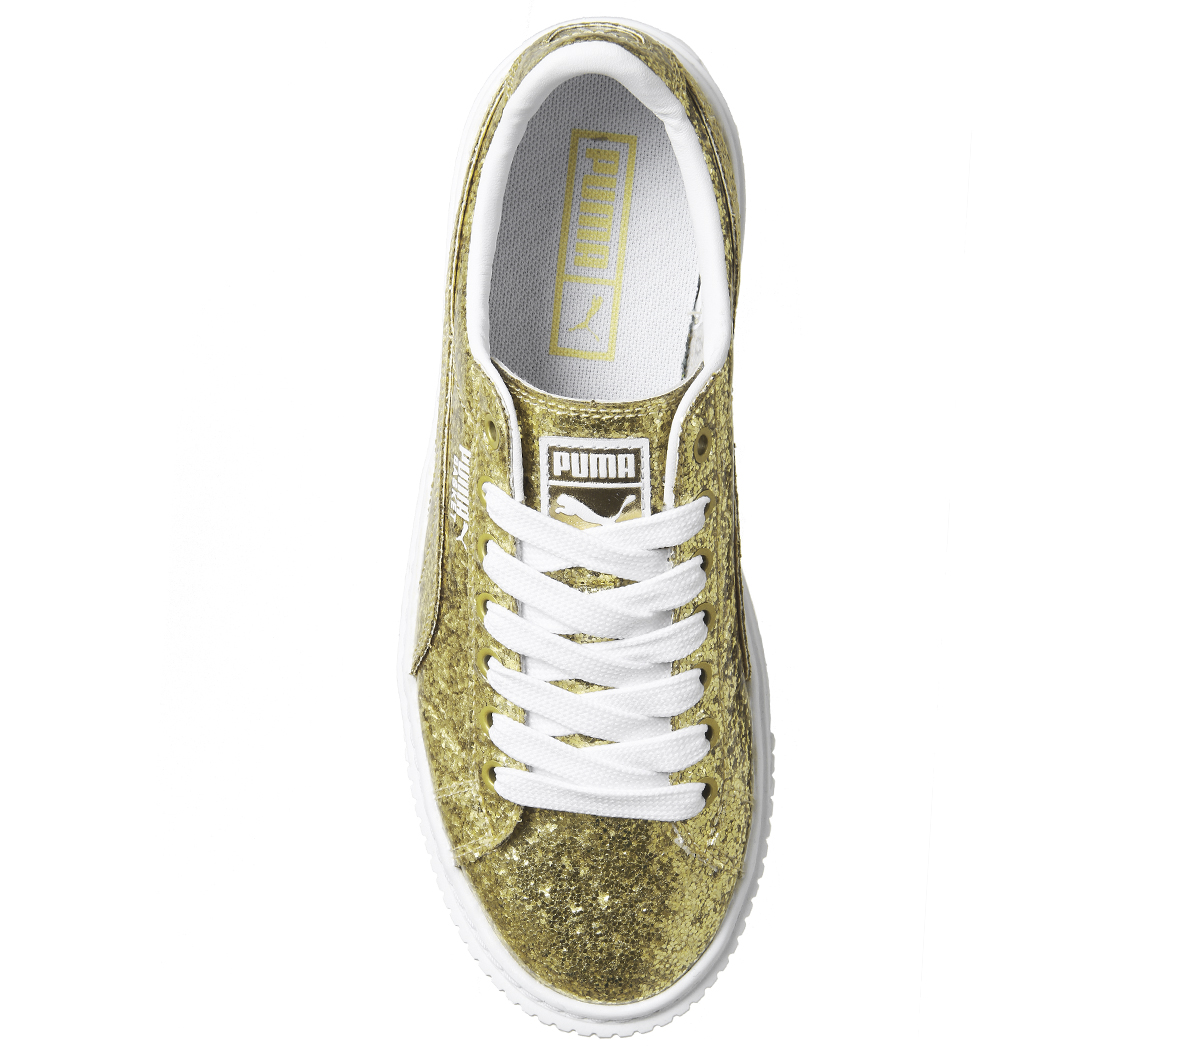 ae0457a0851 Womens Puma Basket Platform Trainers Gold Glitter White Trainers ...